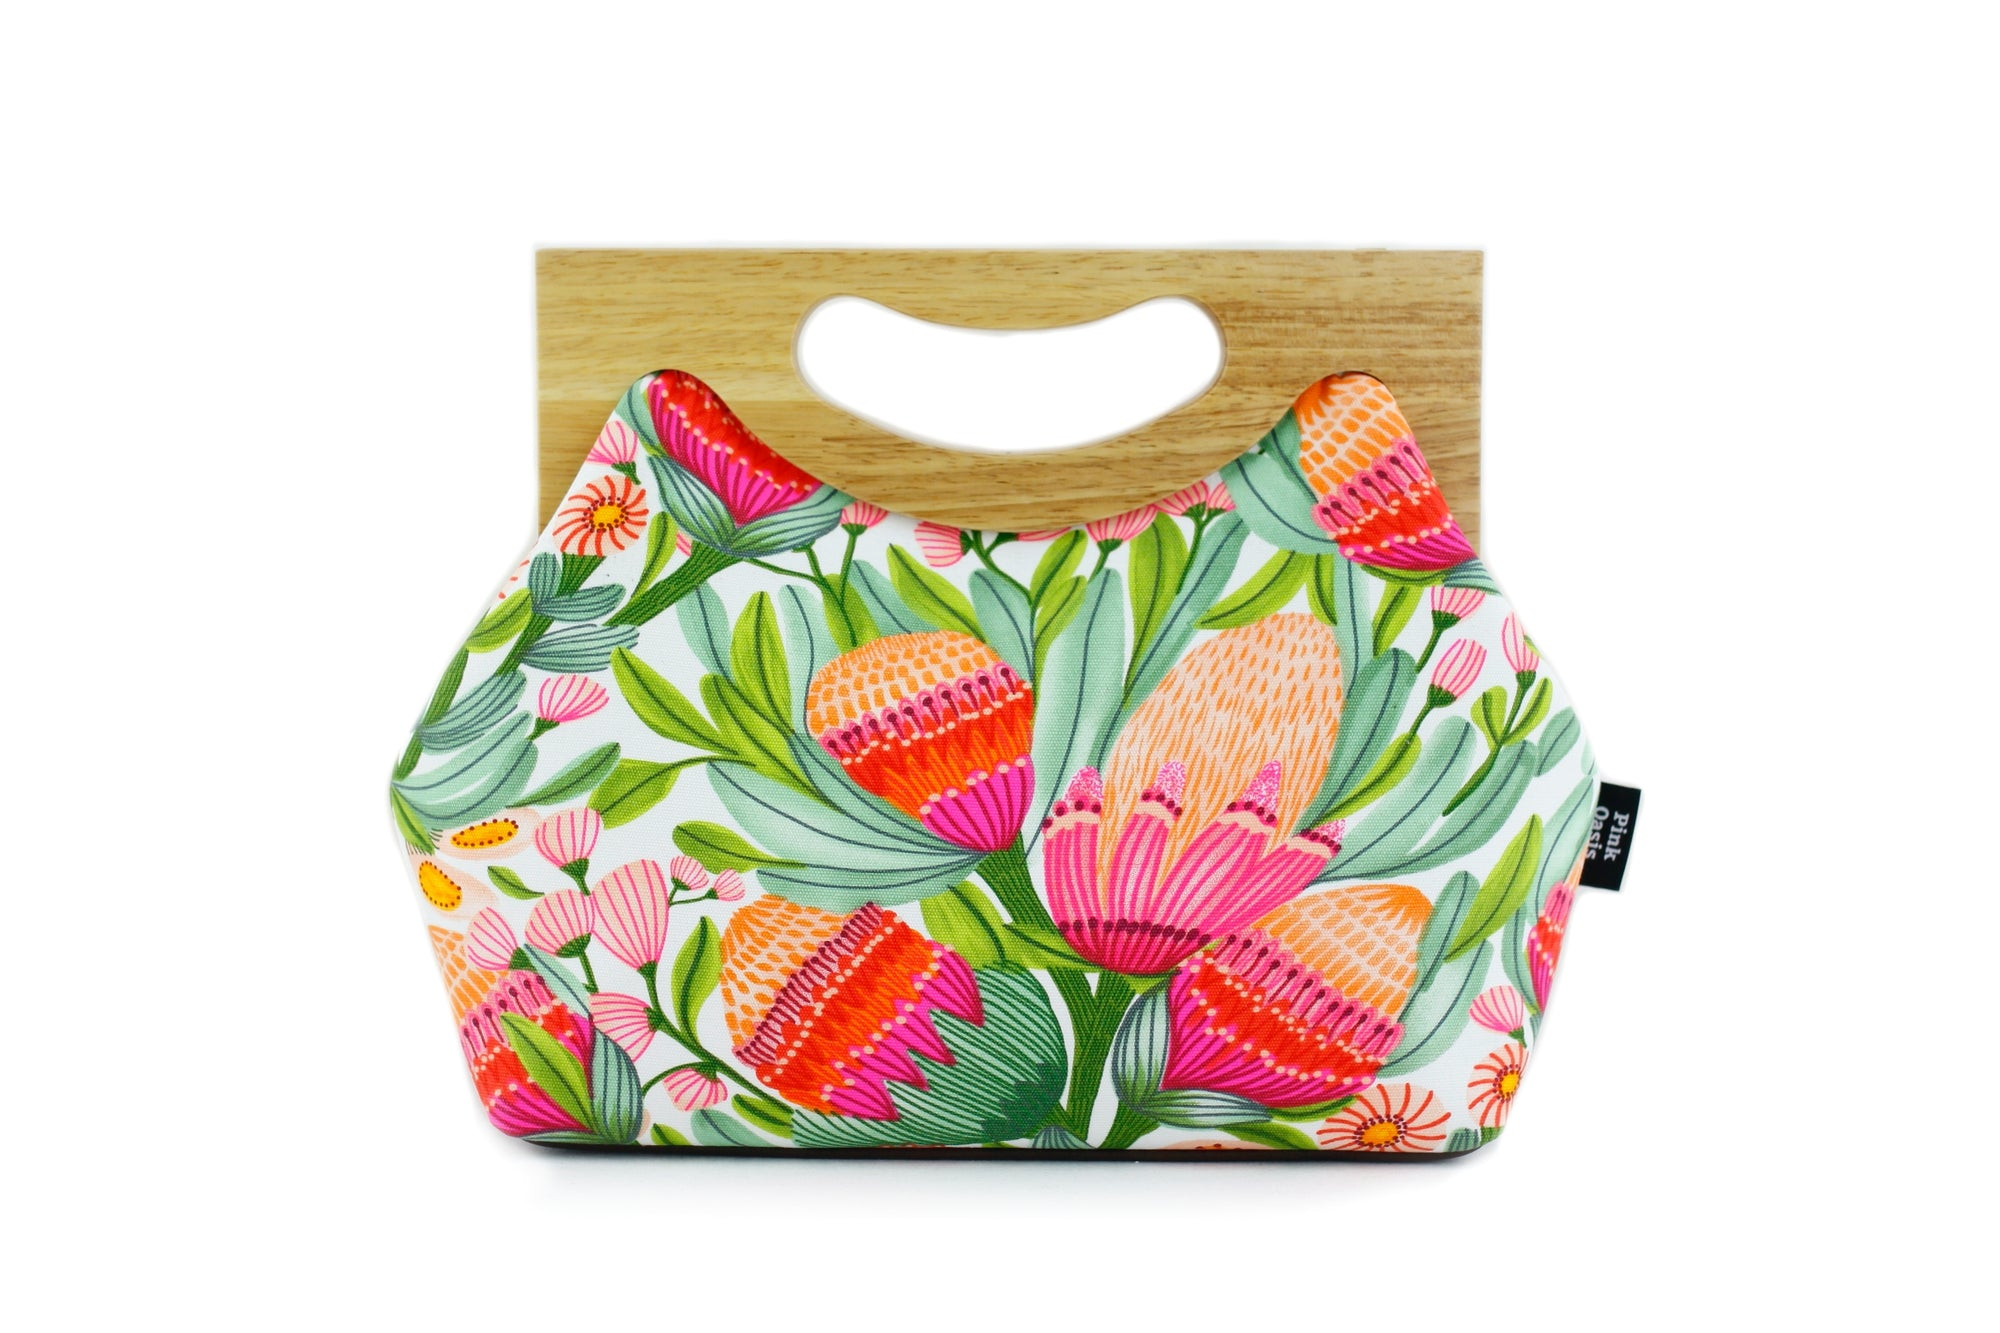 Gum Blossoms Medium Size Wood Frame Bag | PINKOASIS